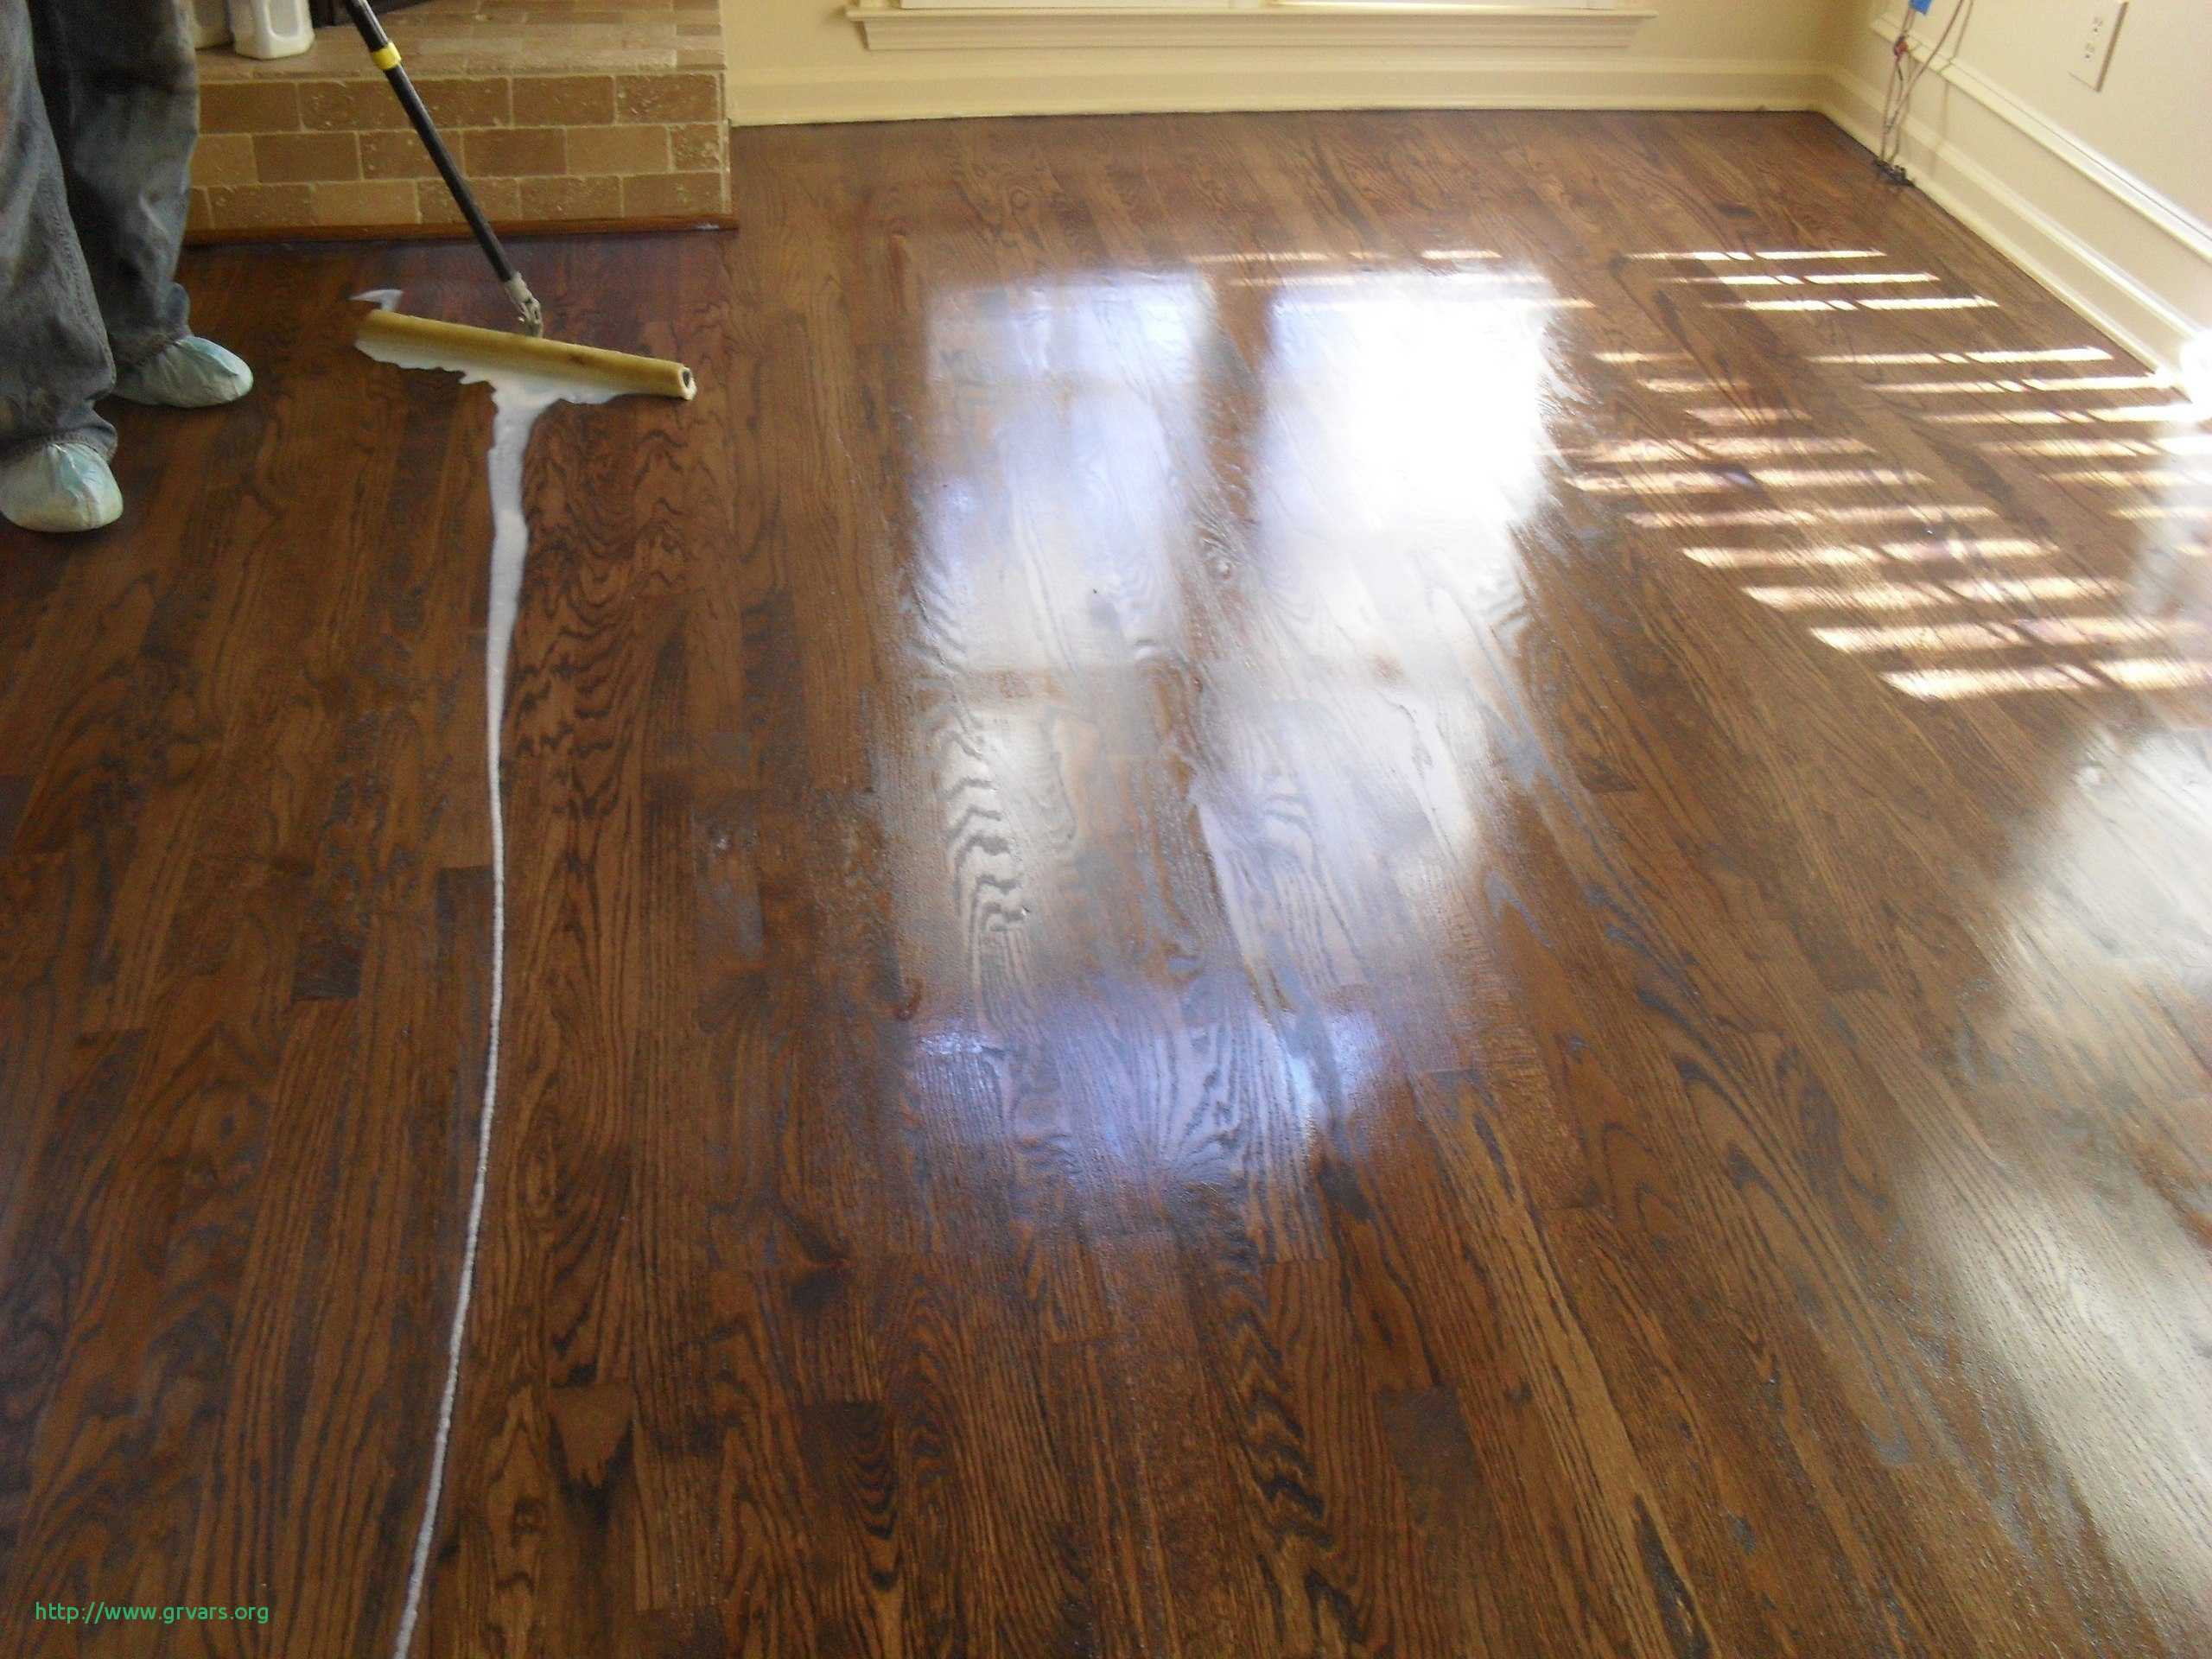 19 attractive Laminate or Engineered Hardwood Flooring which is Better 2021 free download laminate or engineered hardwood flooring which is better of image number 6563 from post restoring old hardwood floors will throughout nouveau hardwood floors yourself ideas restoring old wil